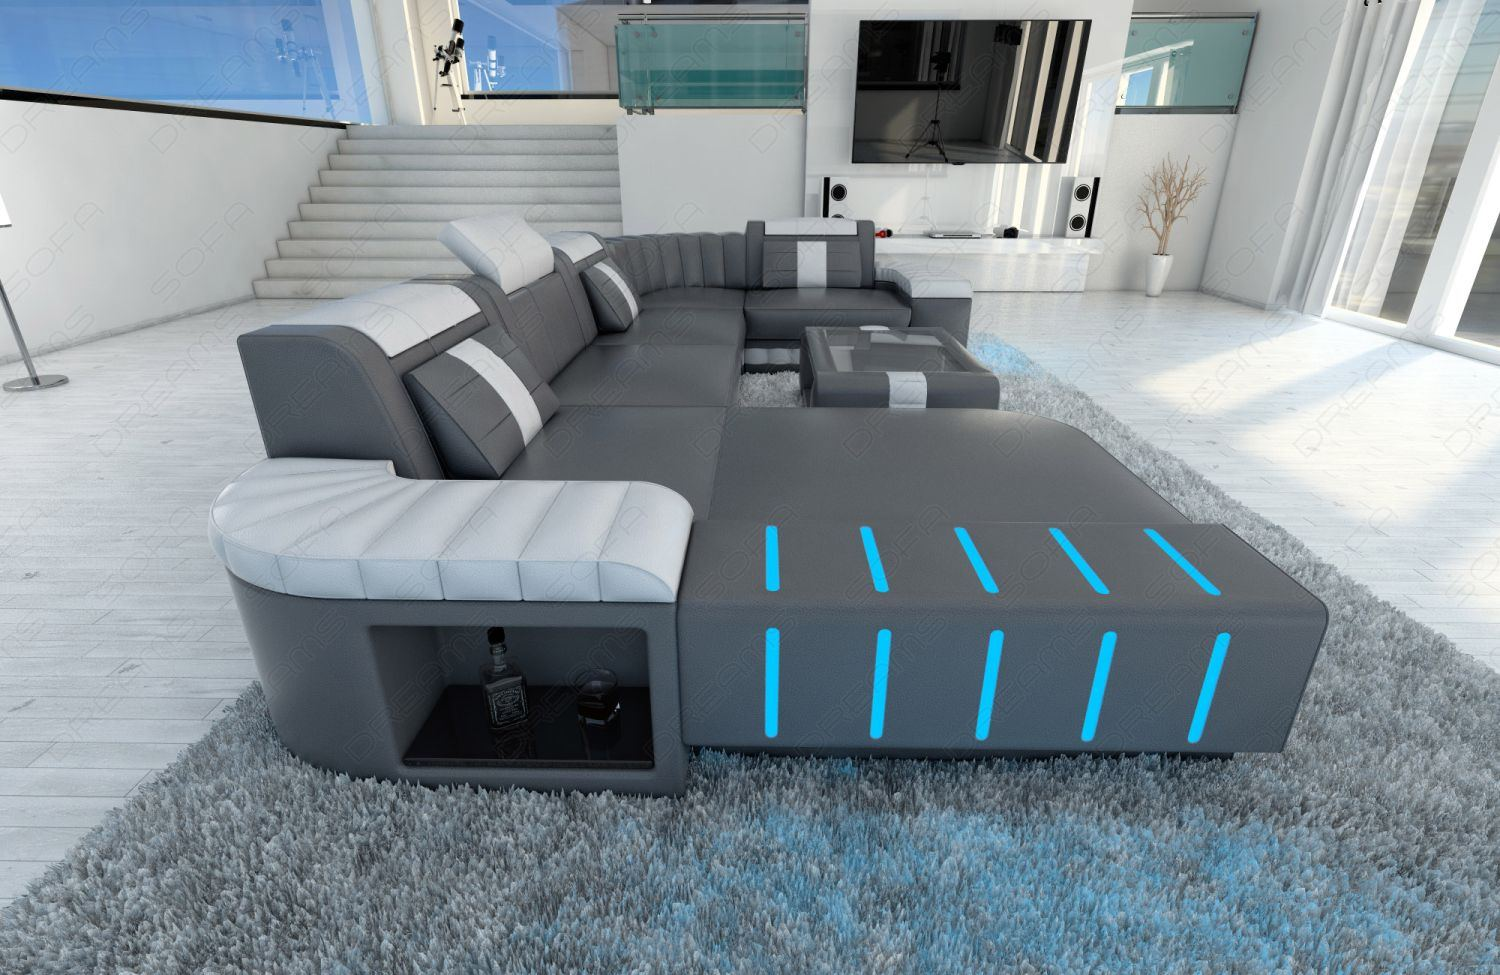 ledersofa design bellagio u form designersofa mit led beleuchtung ebay. Black Bedroom Furniture Sets. Home Design Ideas